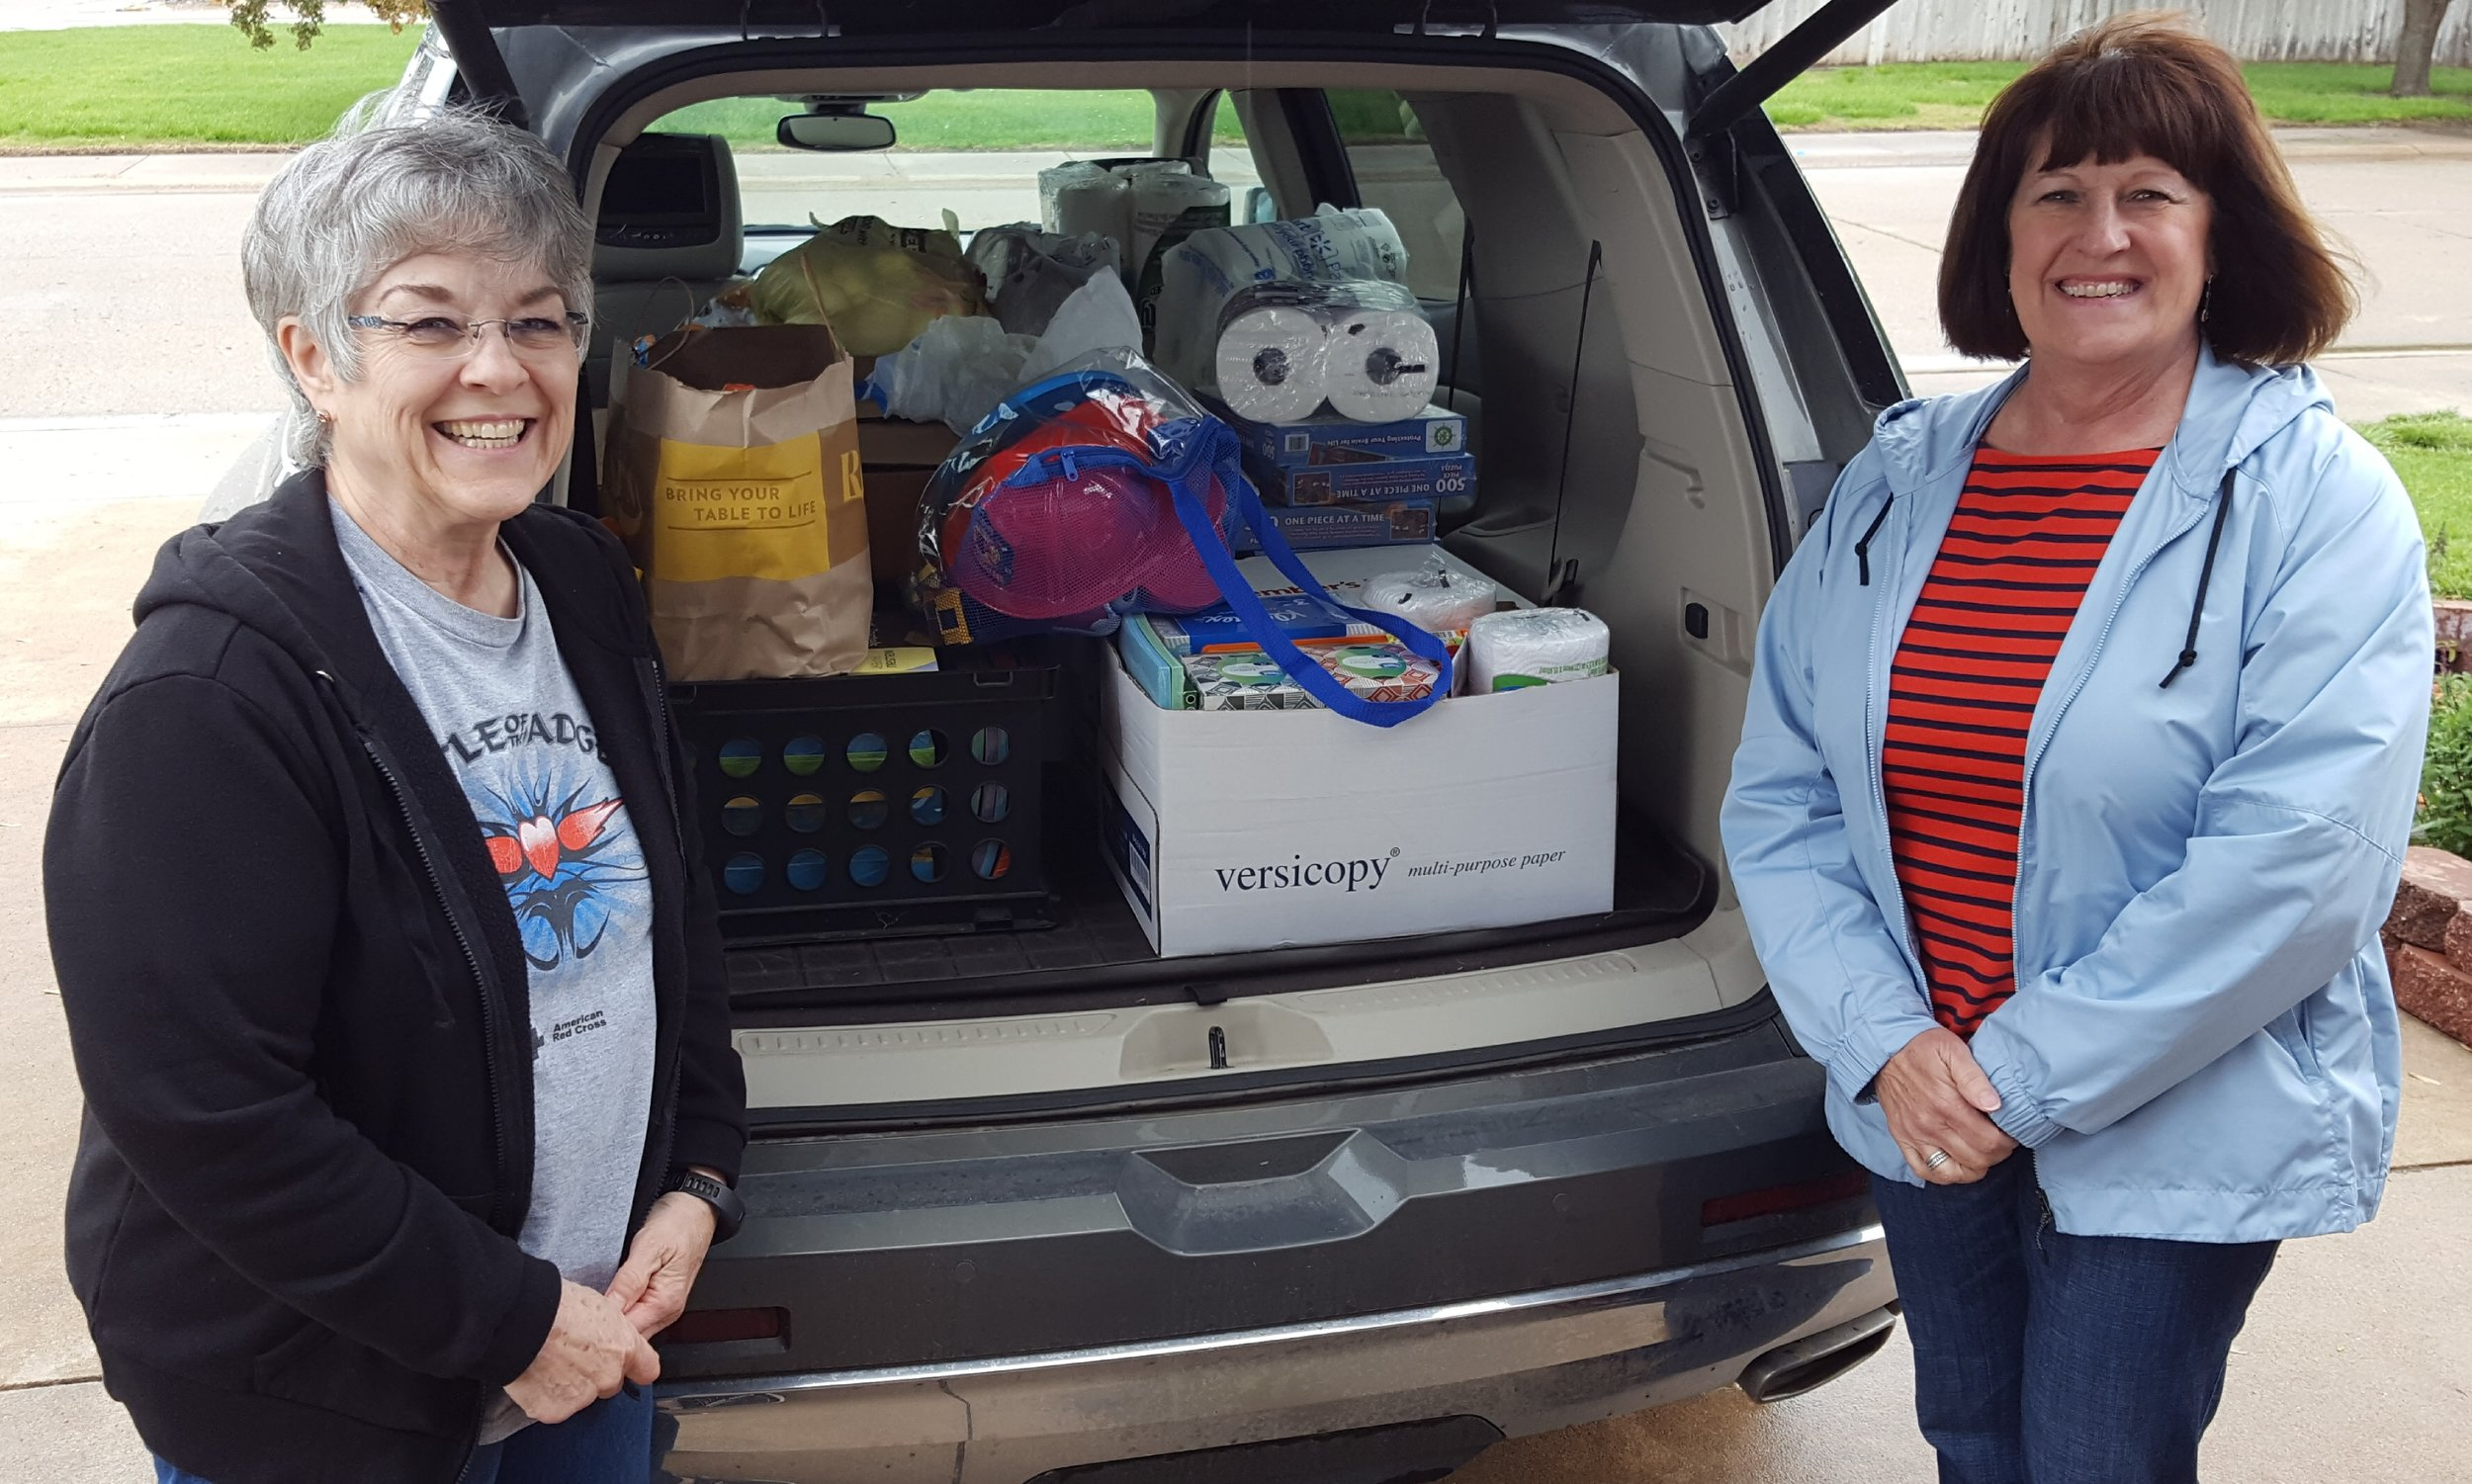 Betty Schneider (projects chair) presents a van load of items collected at Pilot Club Spring Convention plus 9 digital cameras and $1150.00 in checks & gift cards to Gail Moeder from Camp Hope